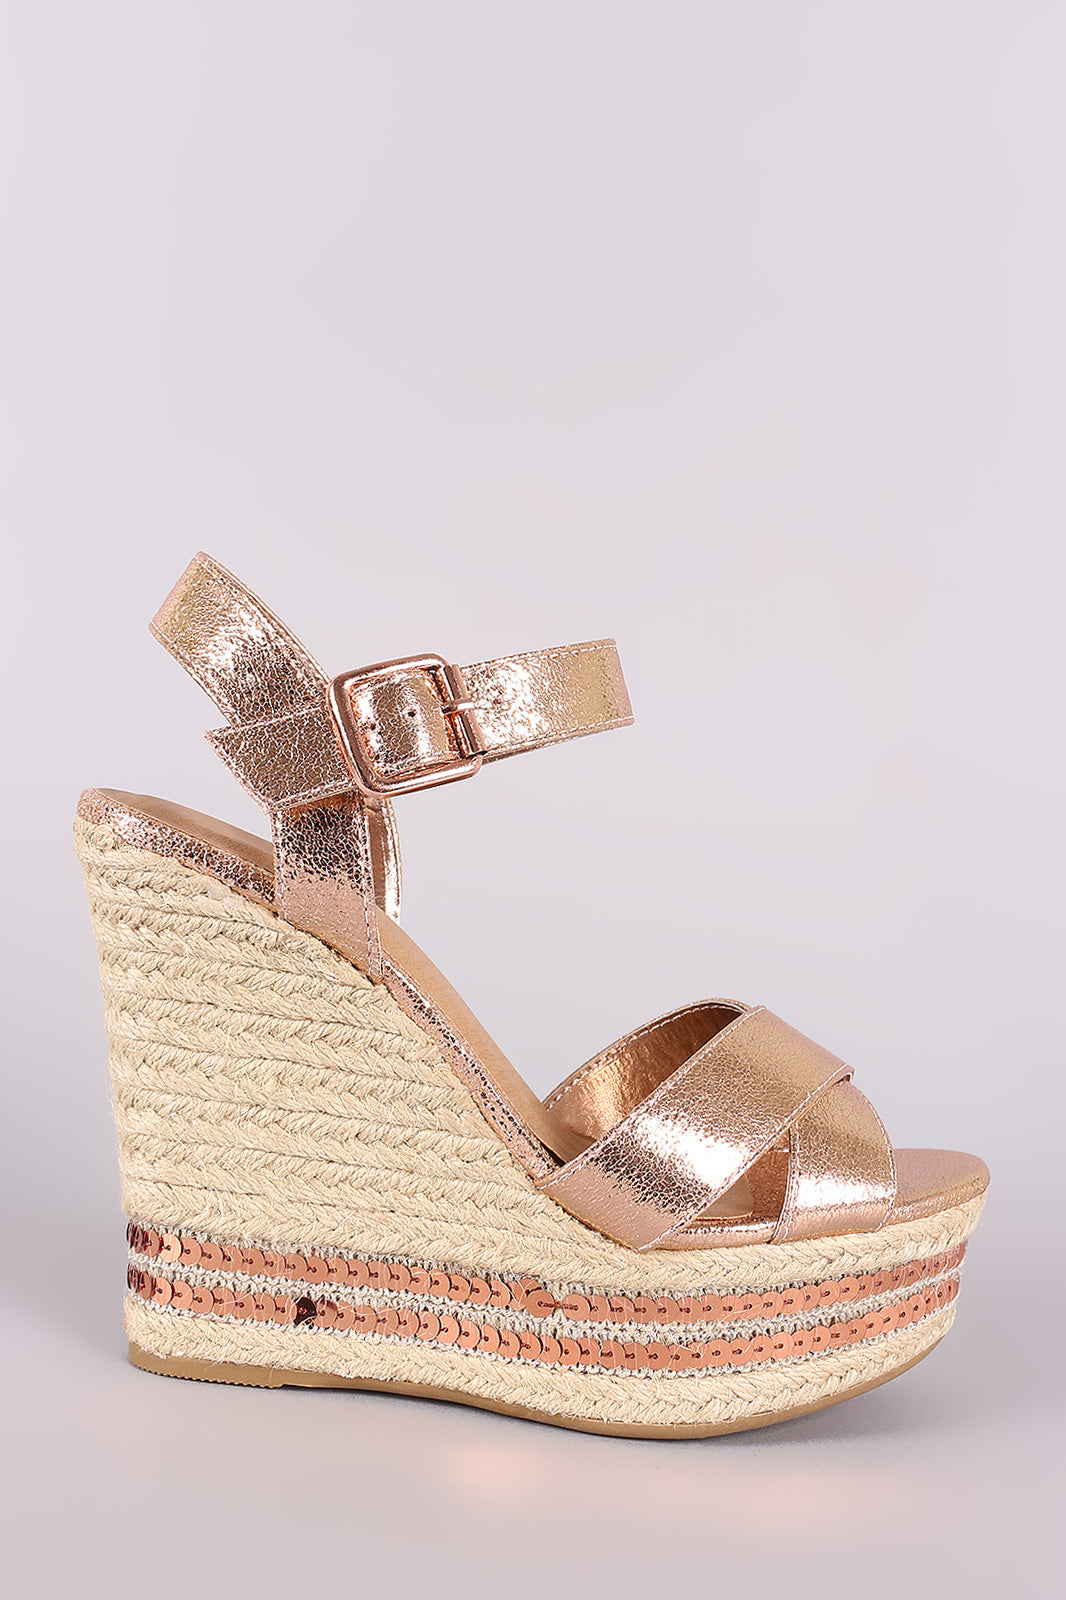 Bamboo Cracked Metallic Sequin Accent Espadrille Platform Wedge